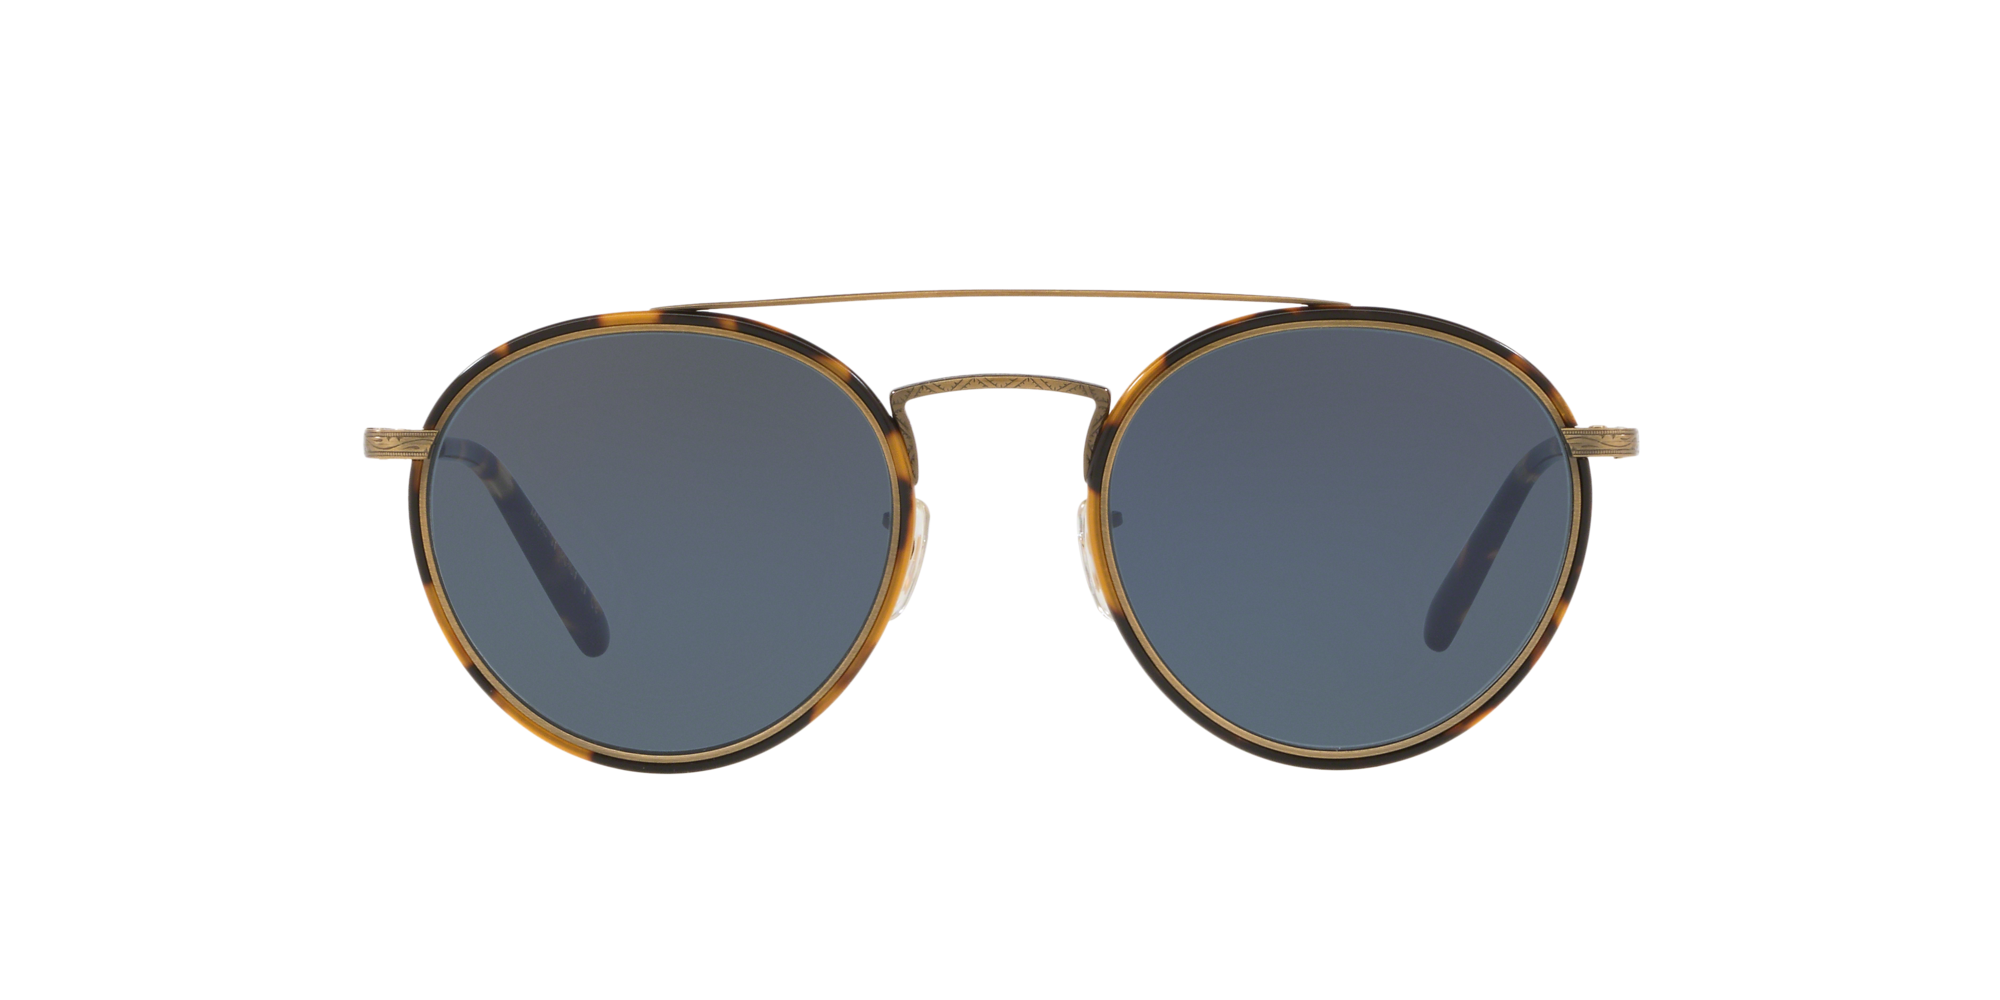 Oliver Peoples Retro Vintage Evey Rose Gold Sunglasses OV 1244S 503787 59mm